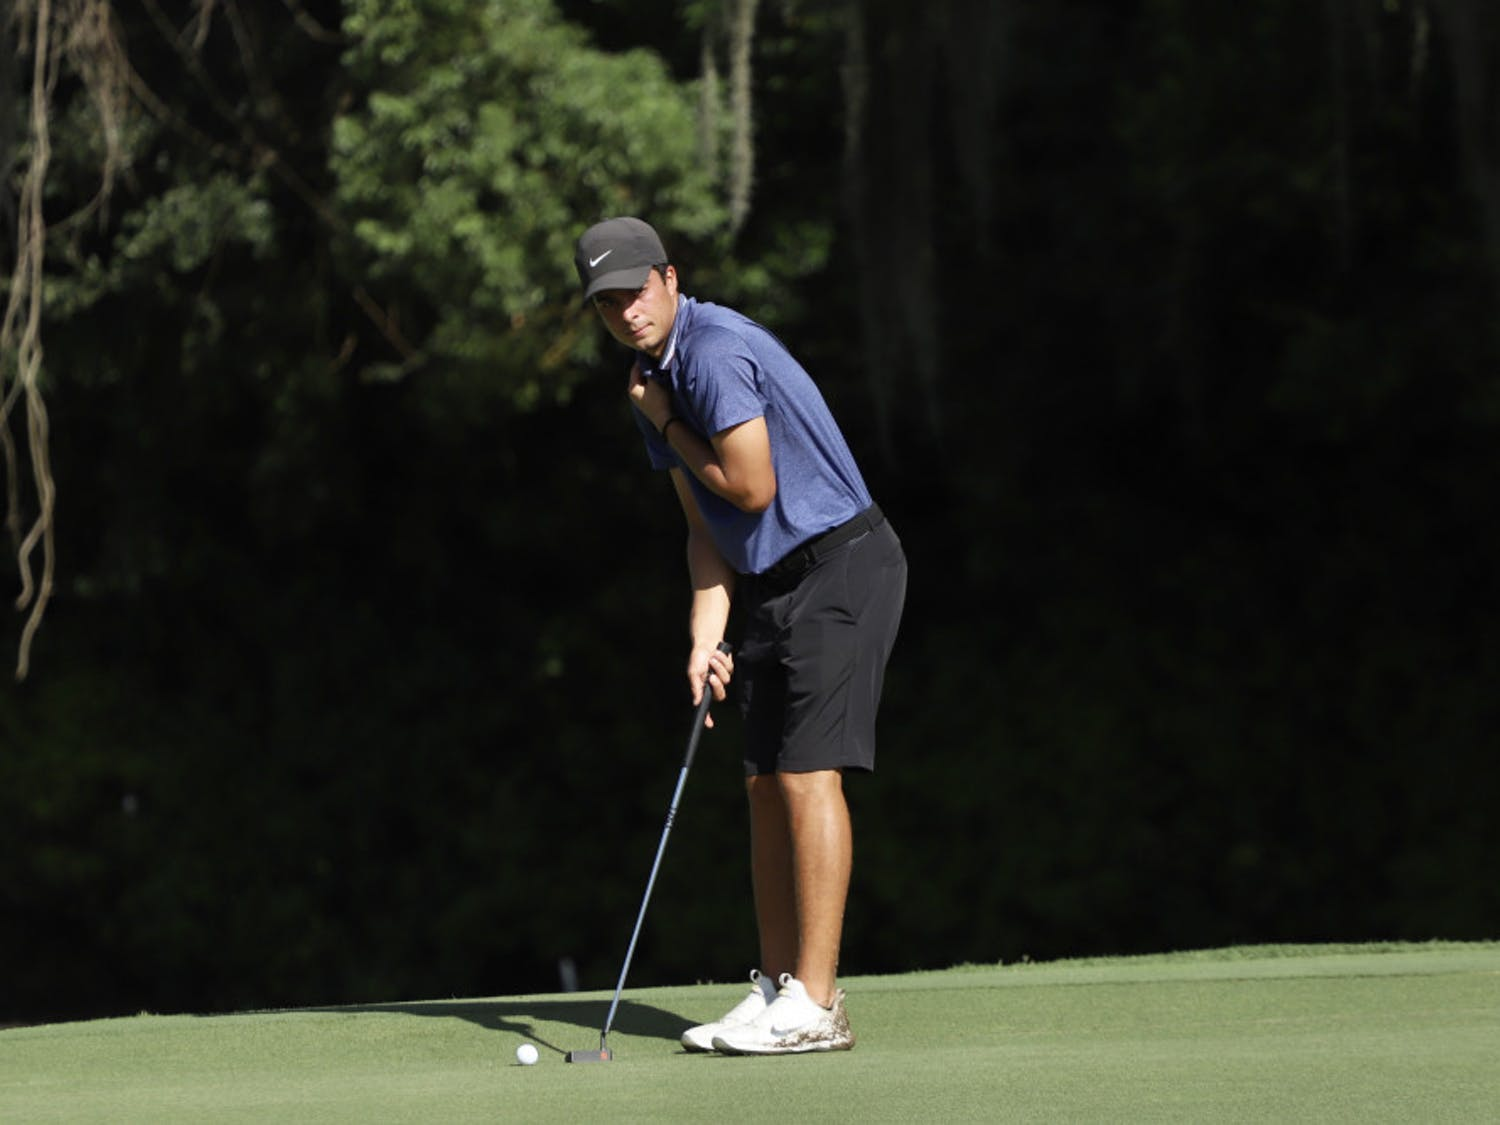 Redshirt sophomore Fred Biondi (pictured) and freshman Joe Pagdin are currently tied for 12th individually at the Vanderbilt Legends Collegiate.